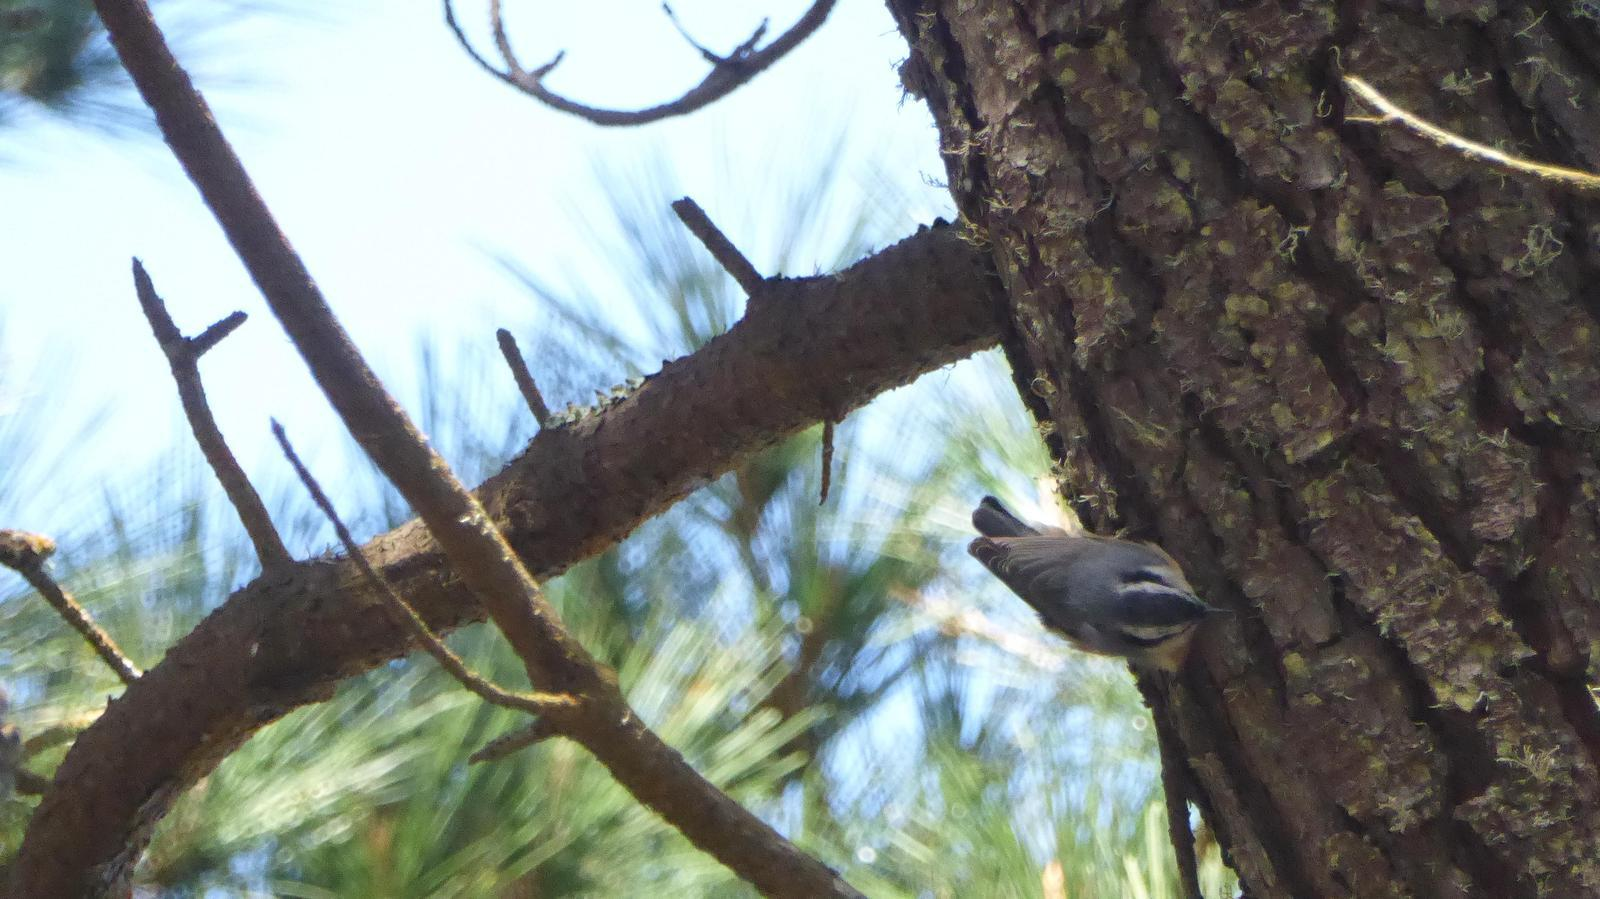 Red-breasted Nuthatch Photo by Daliel Leite